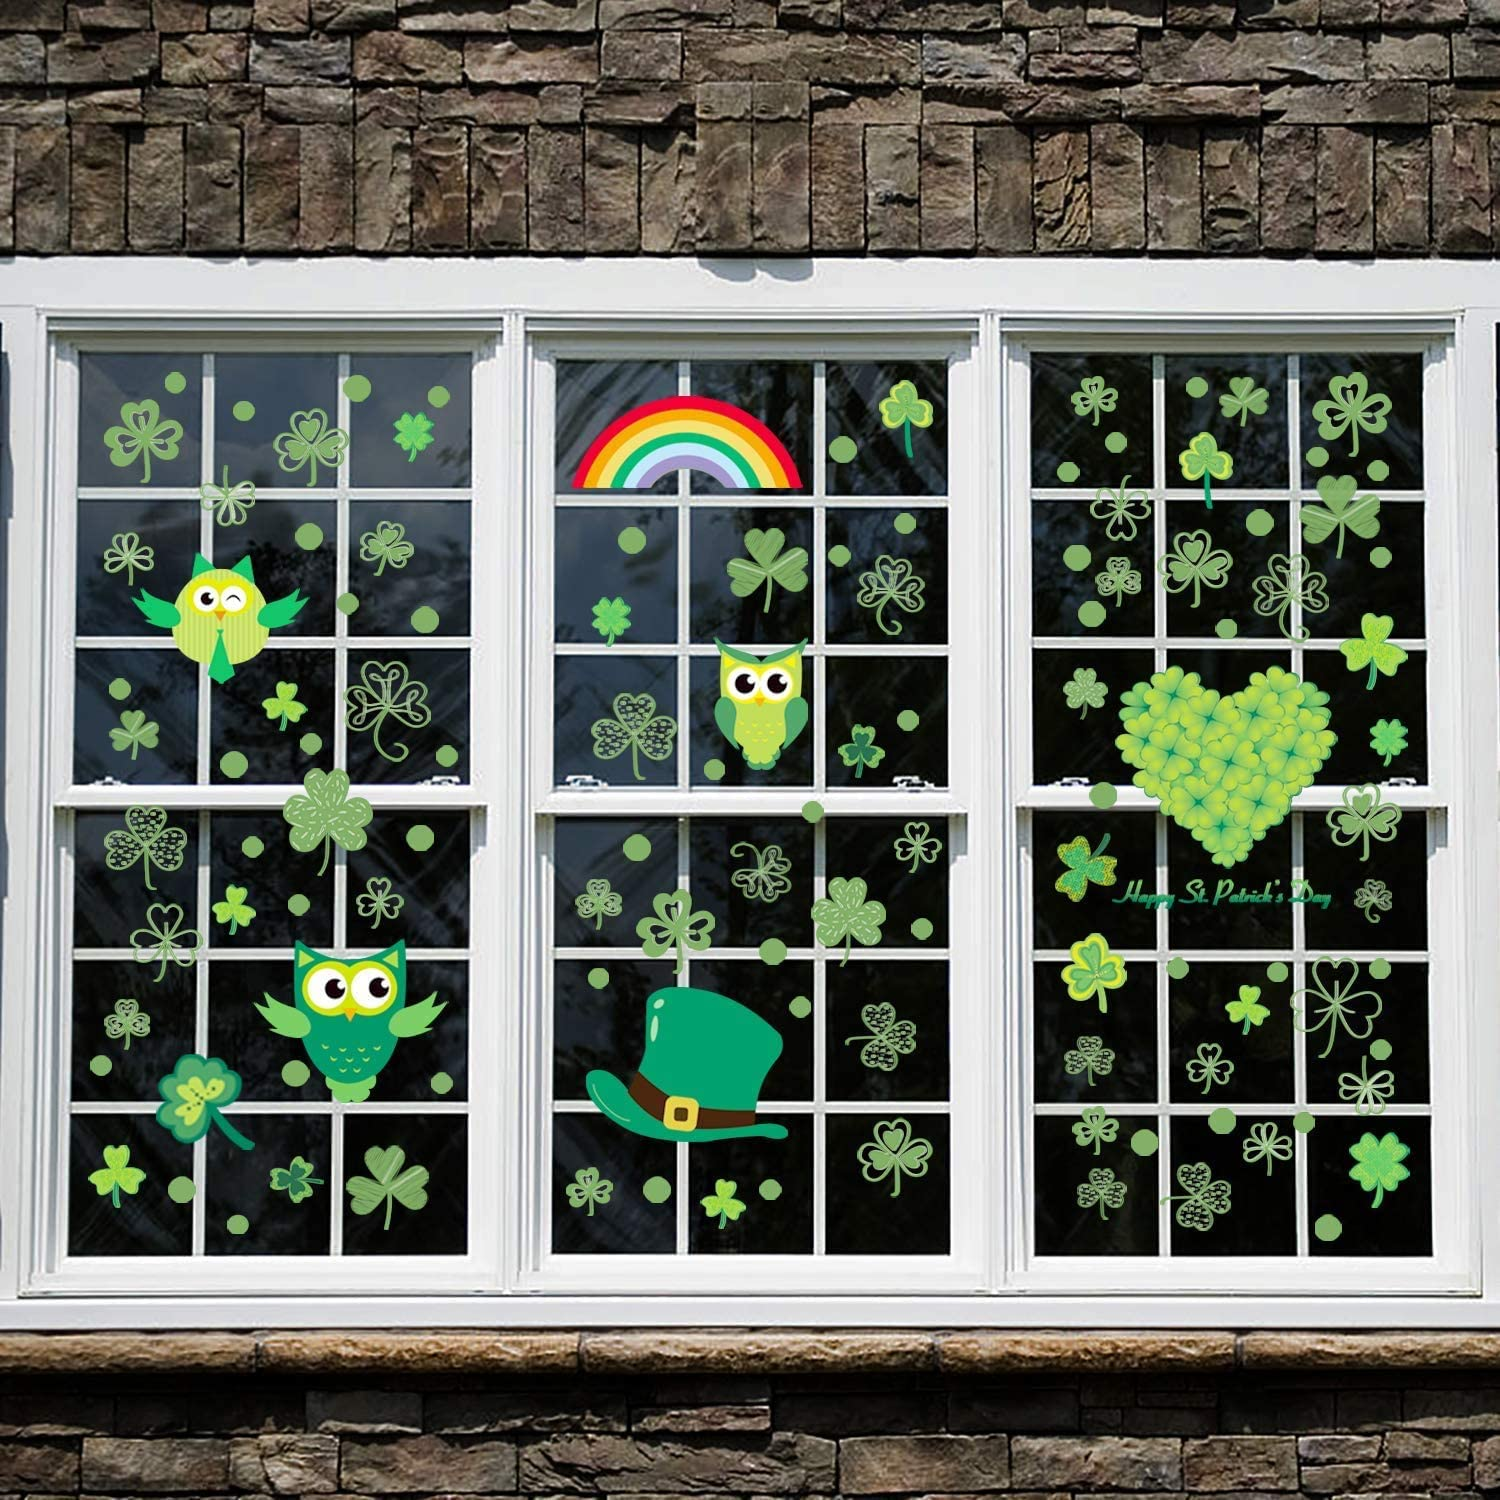 St. Patrick's Day Decorations, Window Decal Stickers Shamrock Decorations Window Clings Decal Stickers Party Ornaments